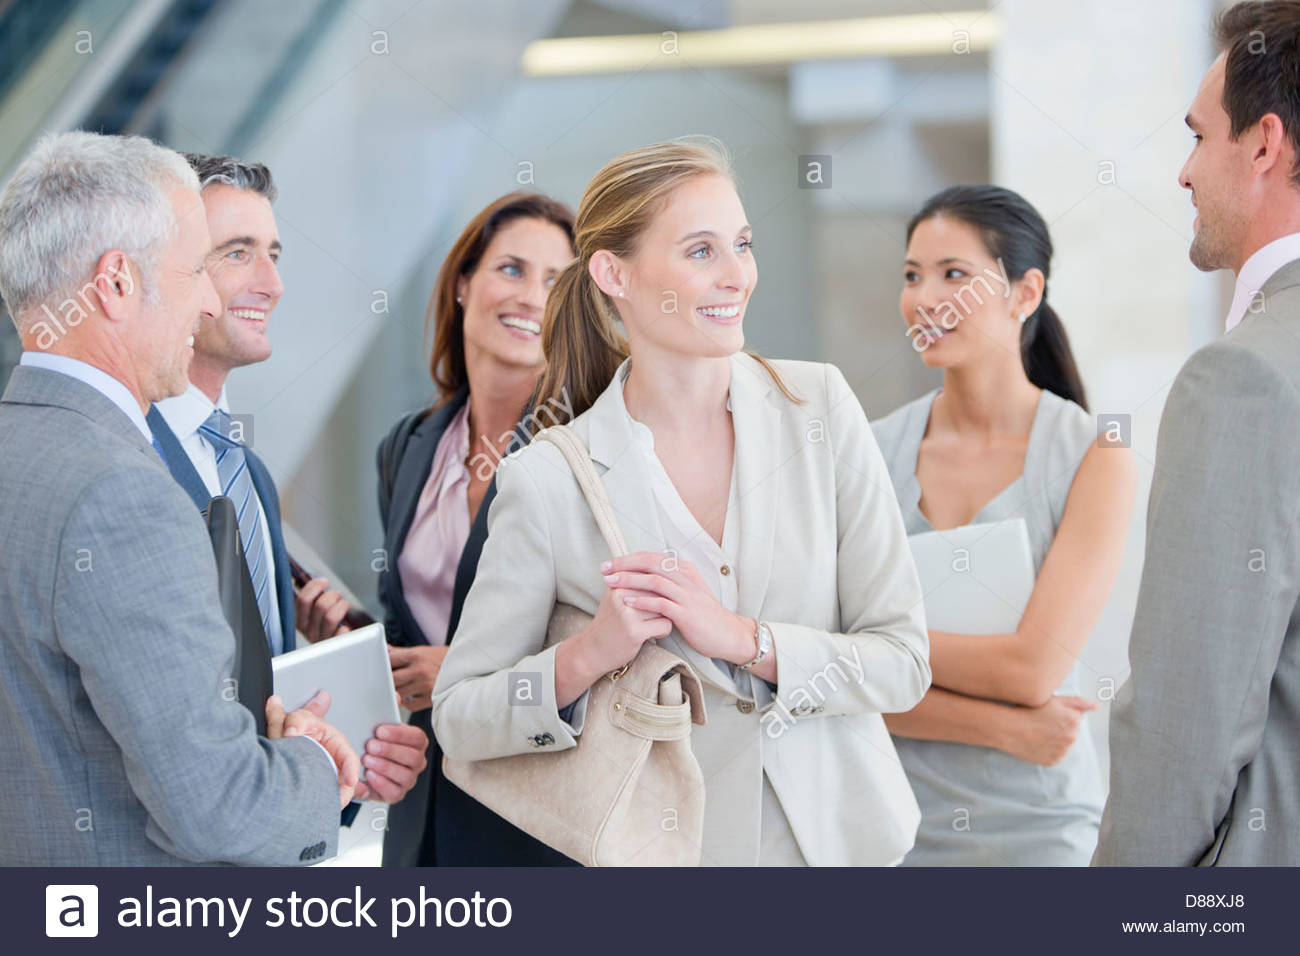 Smiling business people talking - Stock Image